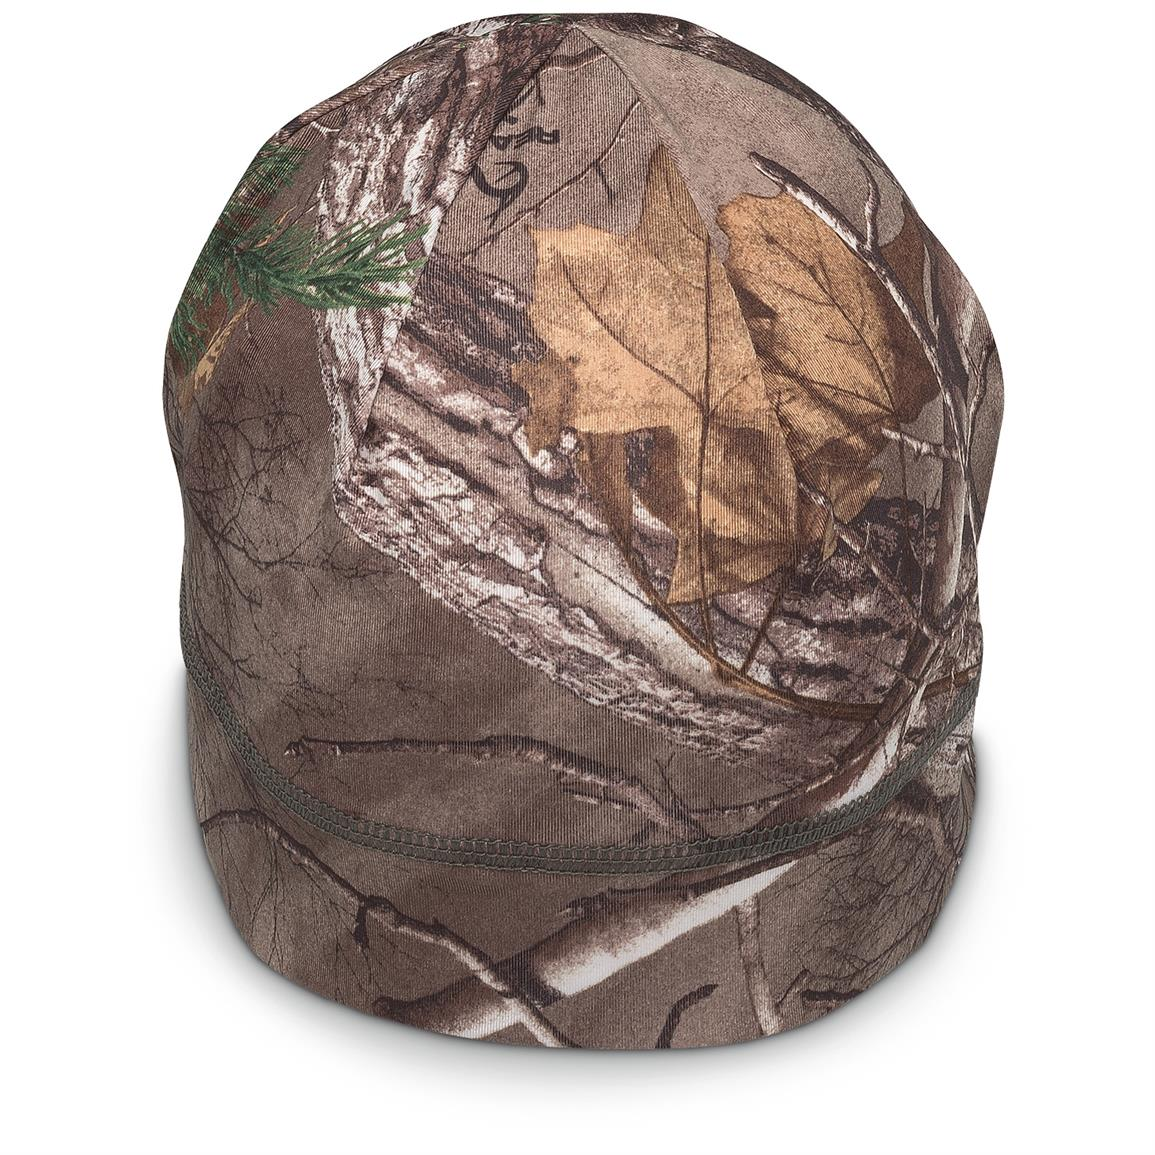 Incredibly lifelike Realtree Xtra detail